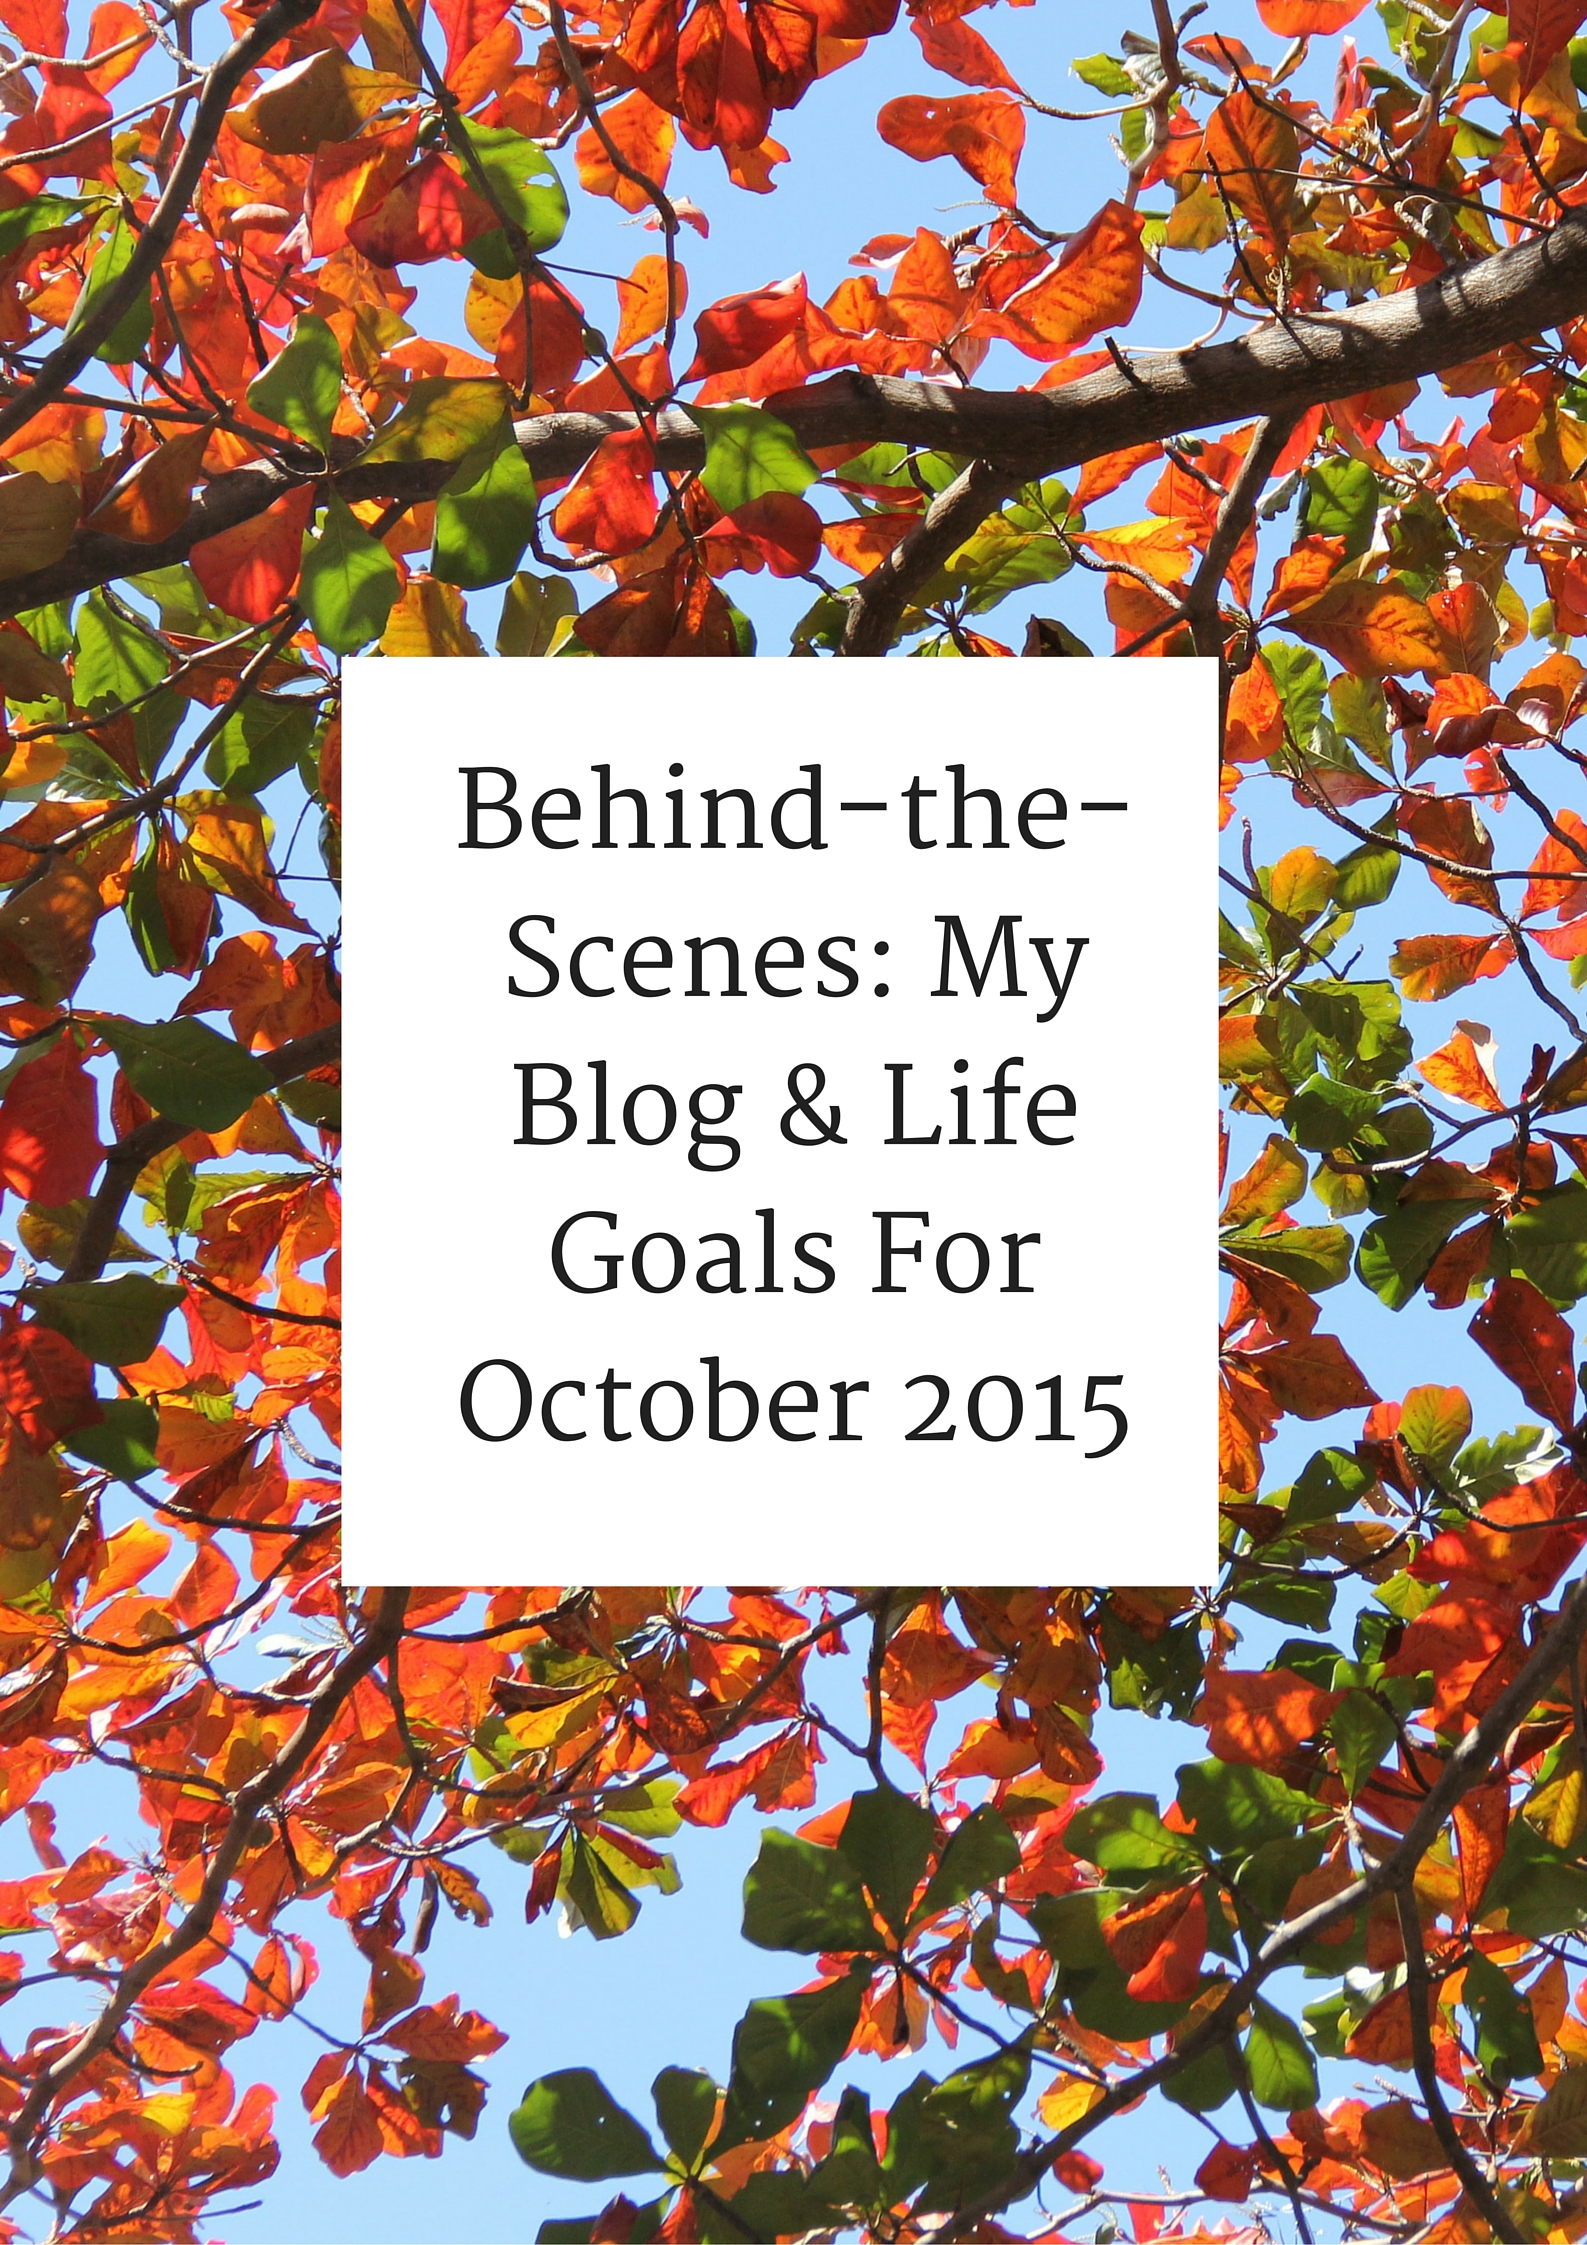 Behind-the-Scenes: My Blog & Life Goals For October 2015